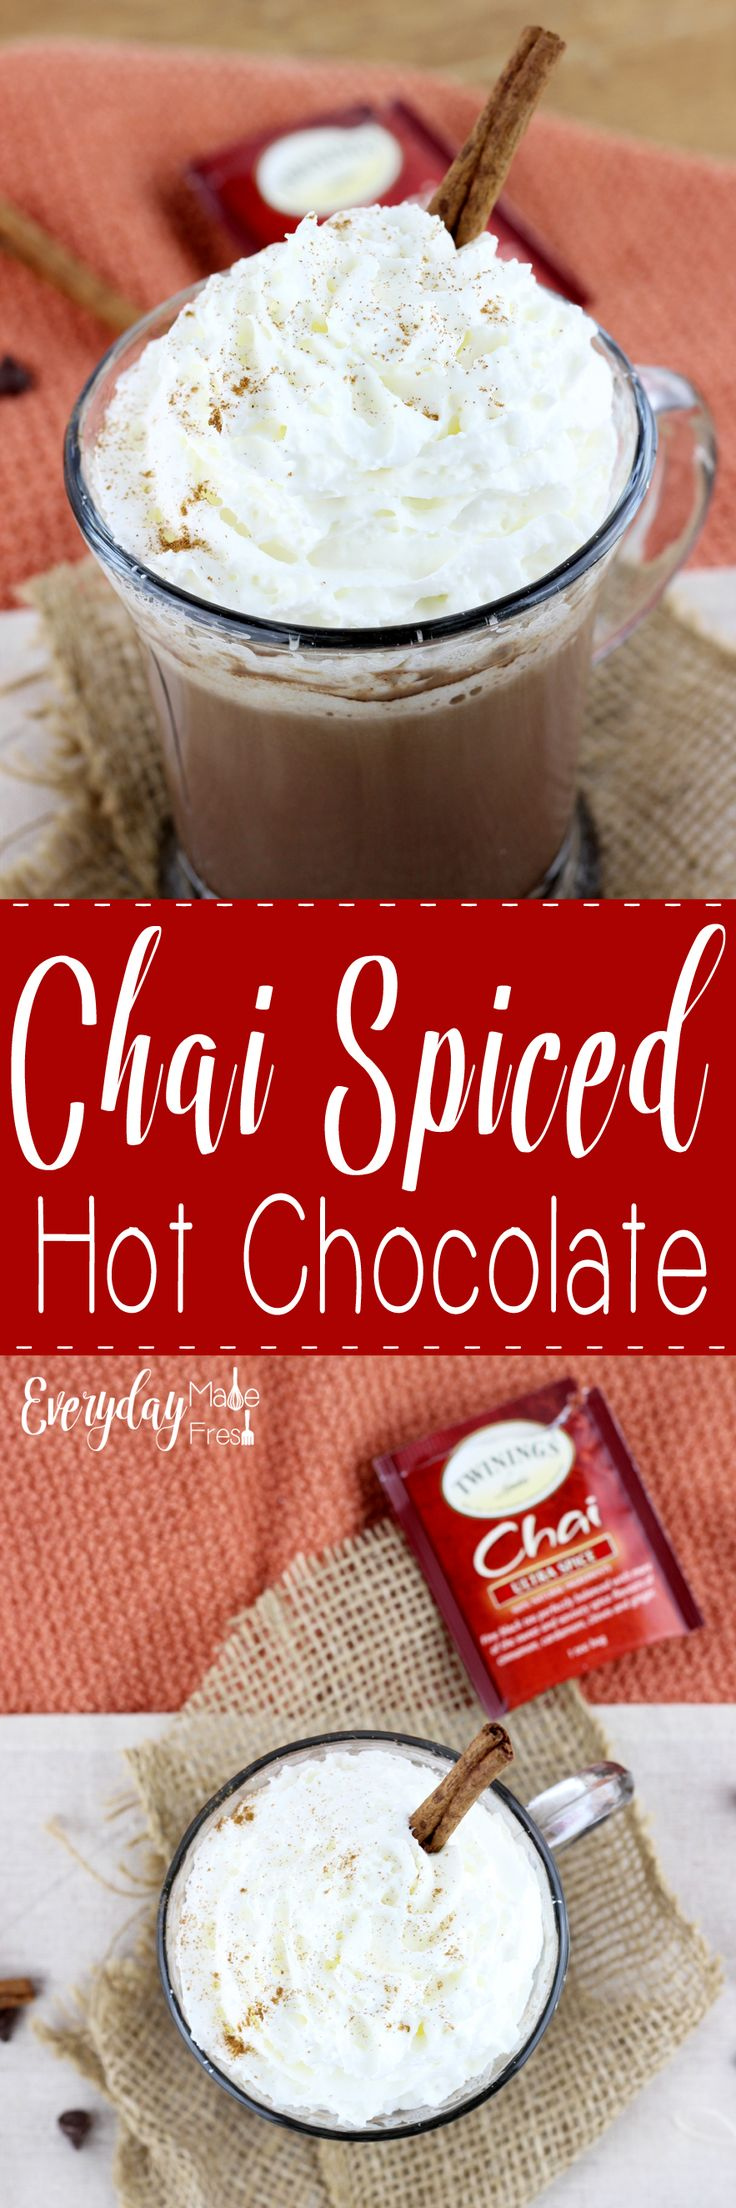 Chai Spiced Hot Chocolate is the perfect warming drink for all those cold winter days ahead! | EverydayMadeFresh.com http://www.everydaymadefresh.com/chai-spiced-hot-chocolate/